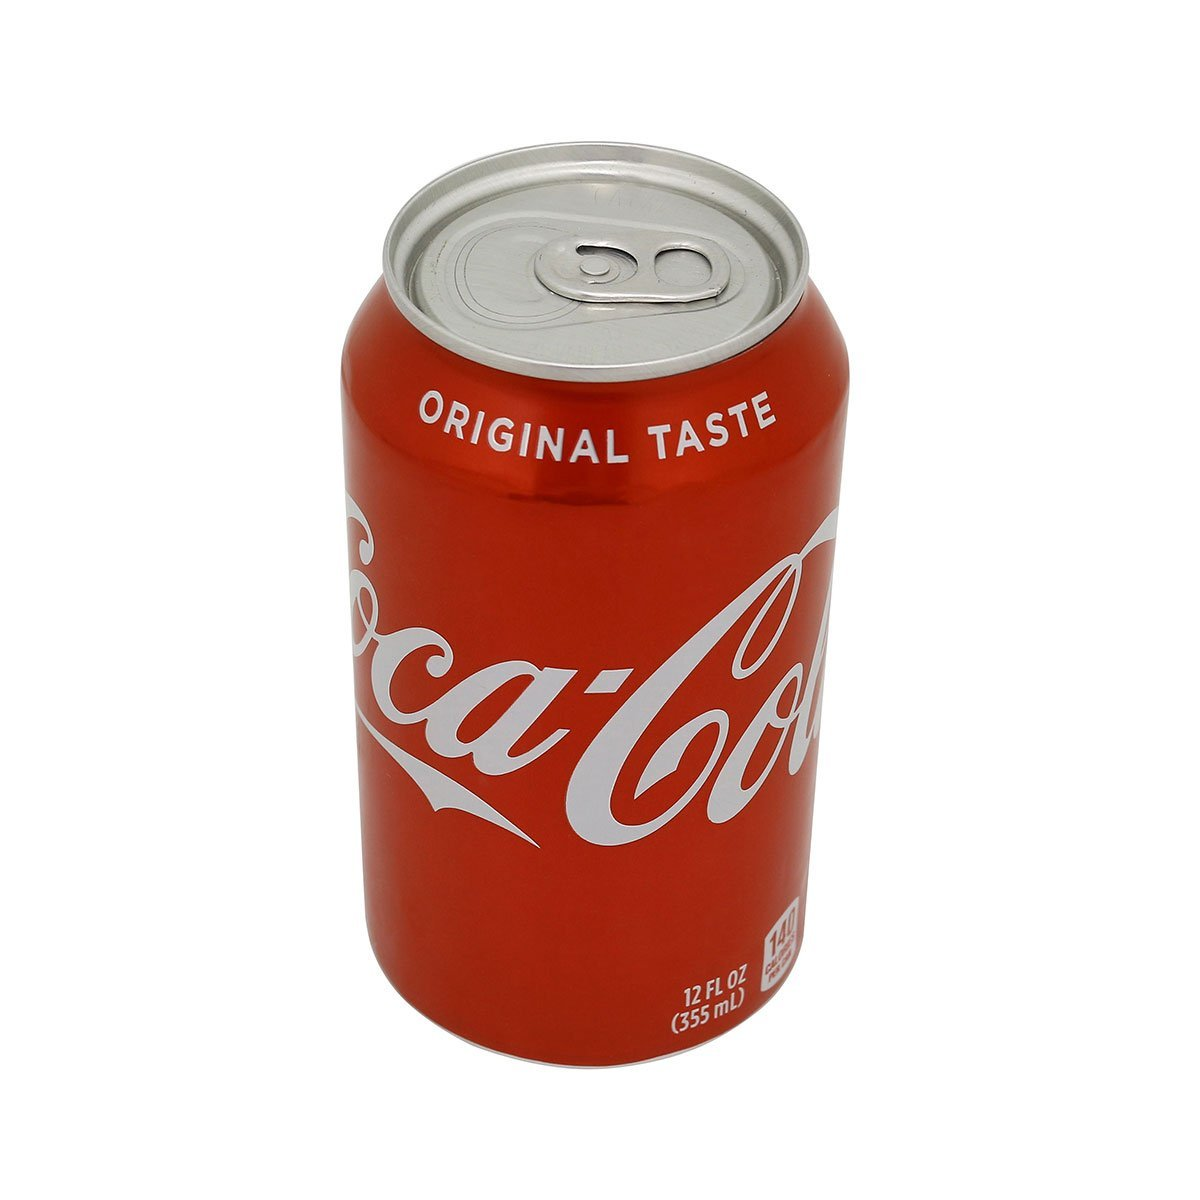 LYTIO Diversion Soda Can Lookalike Safe Stash: Hide Your Valuables in Plain Sight (Coca-Cola)